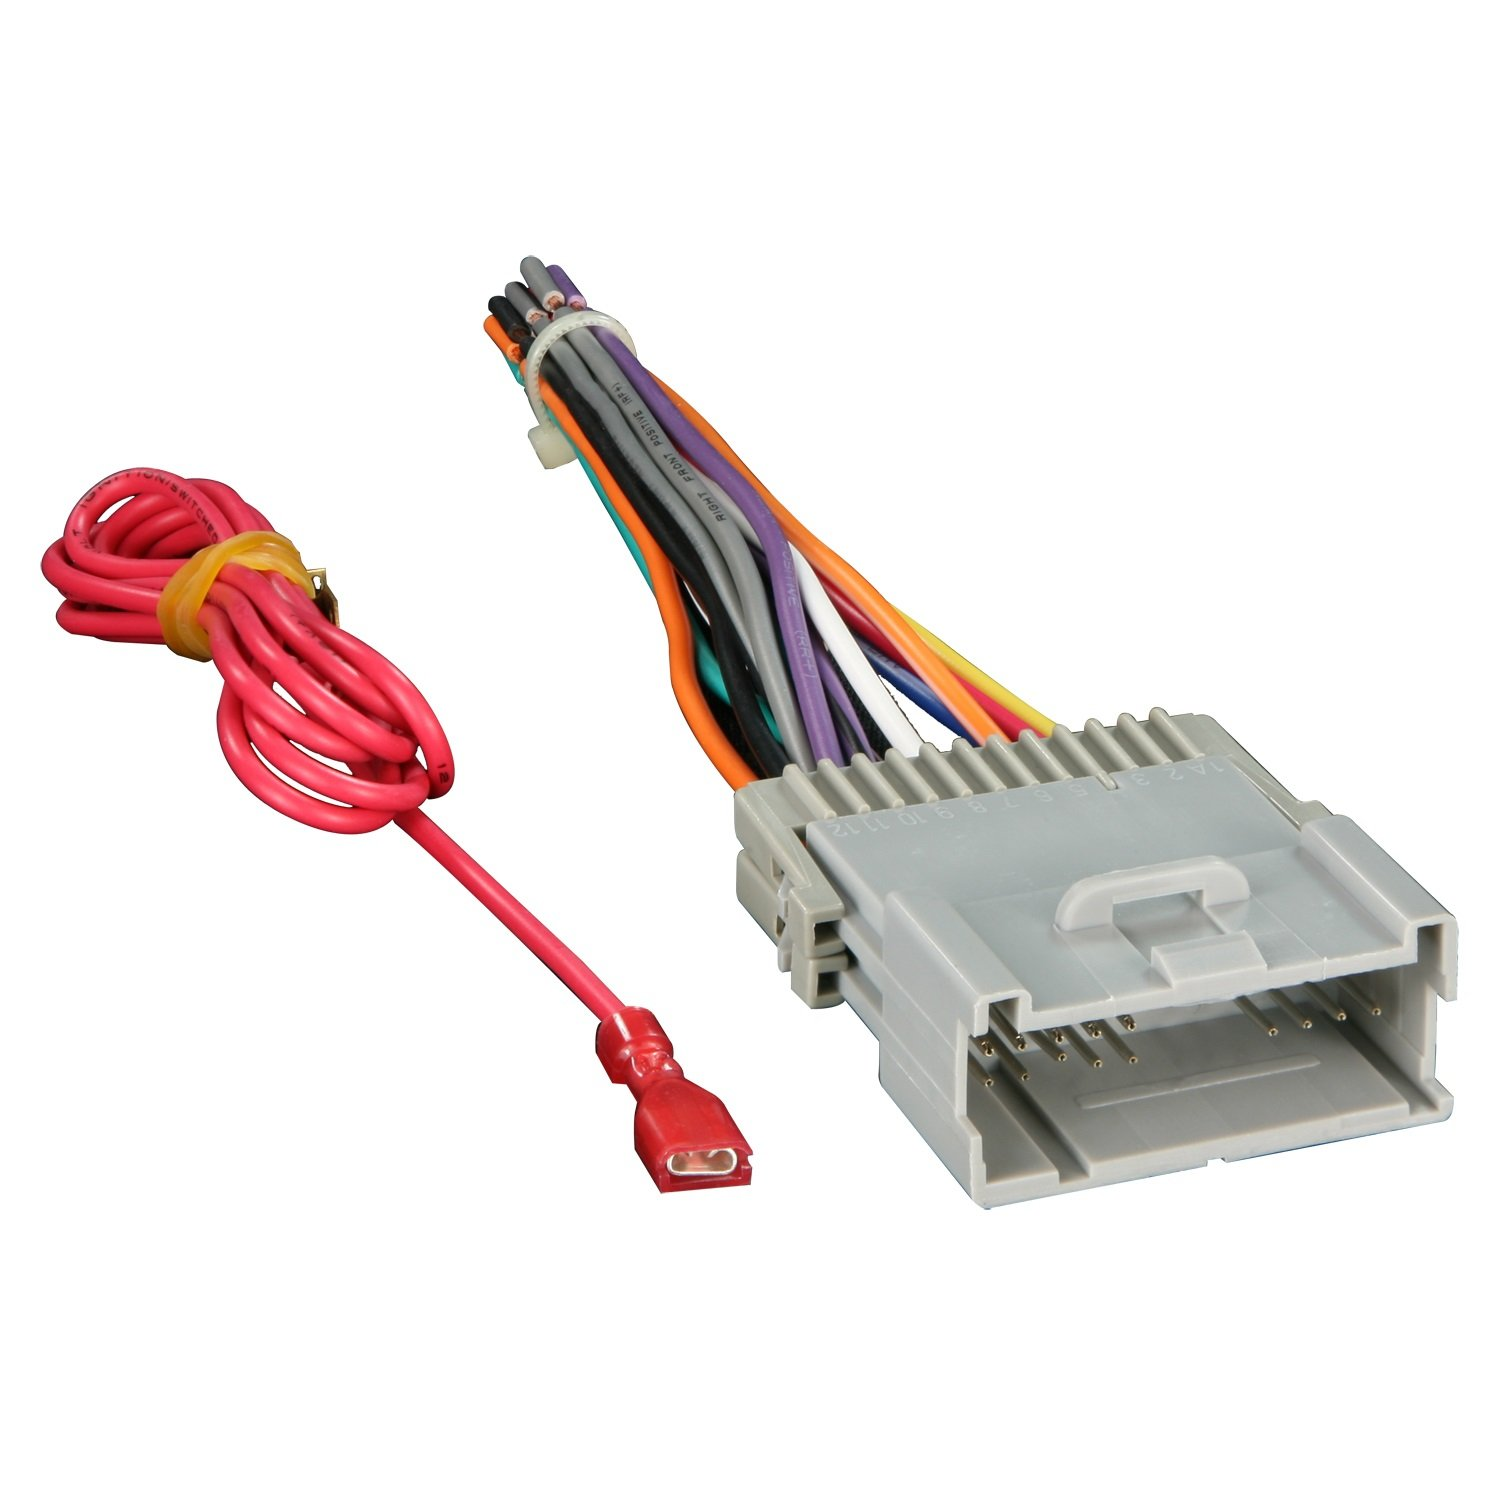 61eewxp9orL._SL1500_ amazon com metra 70 2003 radio wiring harness for gm 98 08 Delco Radio Wiring Color Codes at virtualis.co